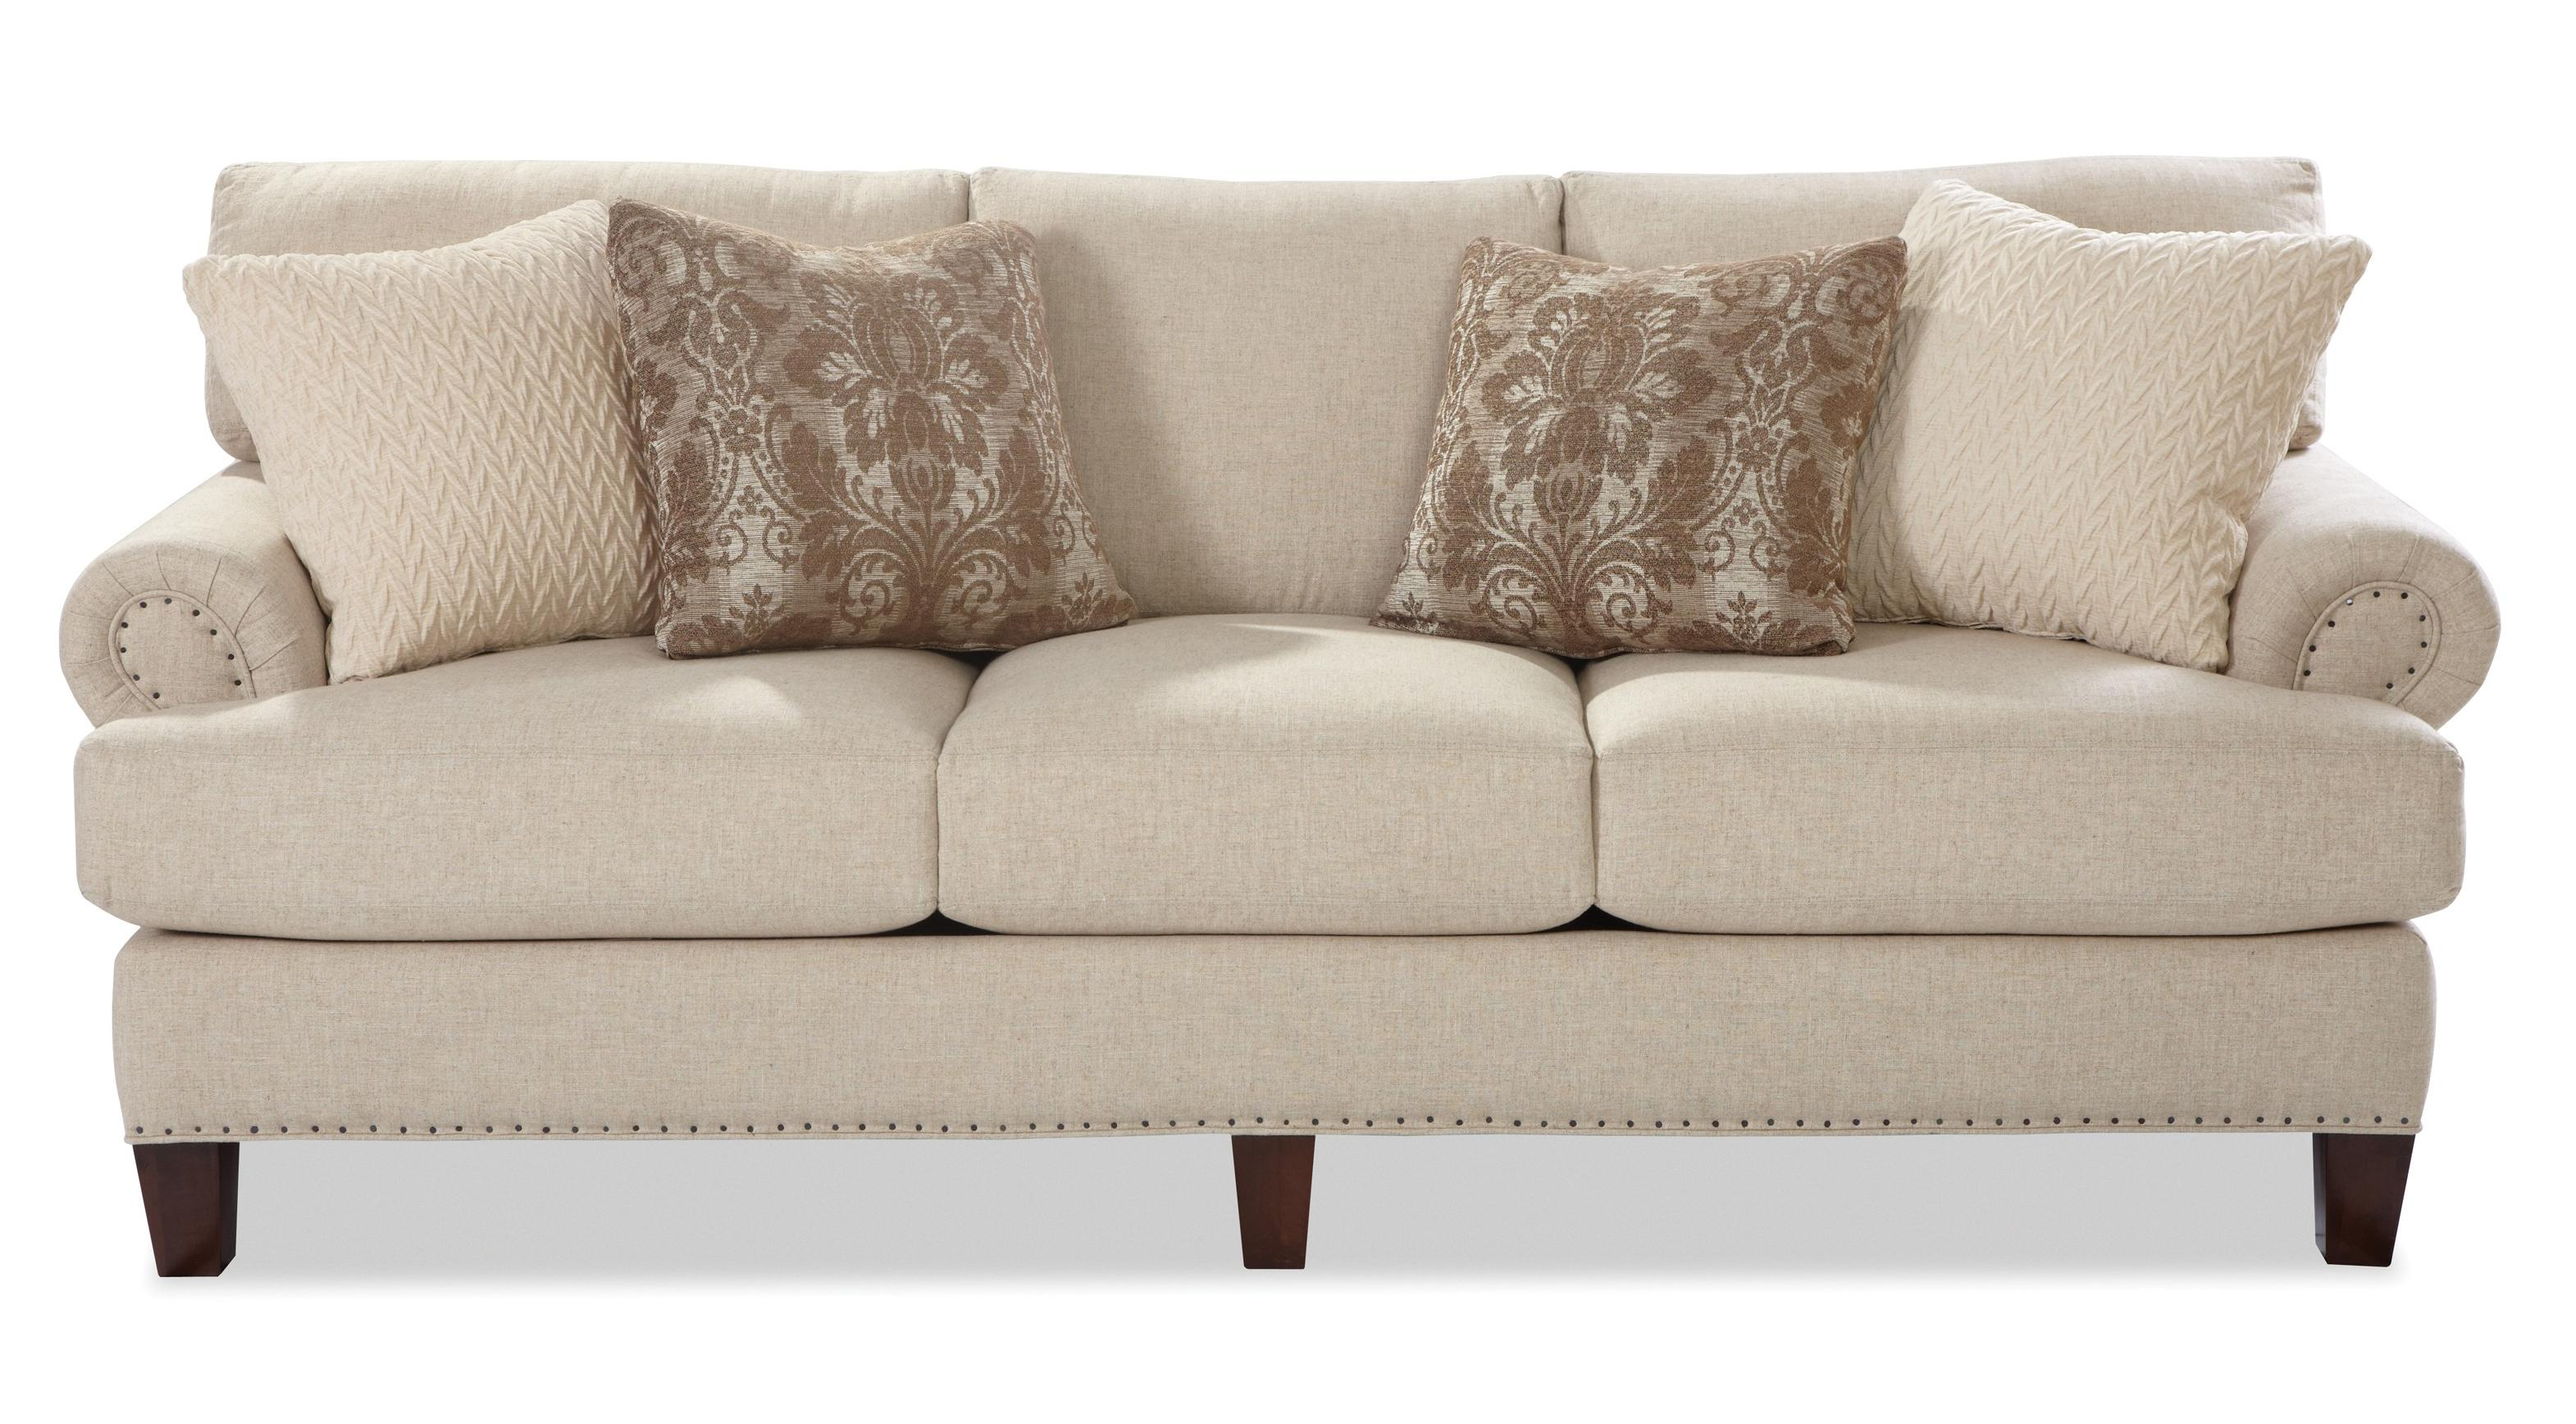 Craftmaster 7405 Sofa - Item Number: 740550-HOPSACK-10